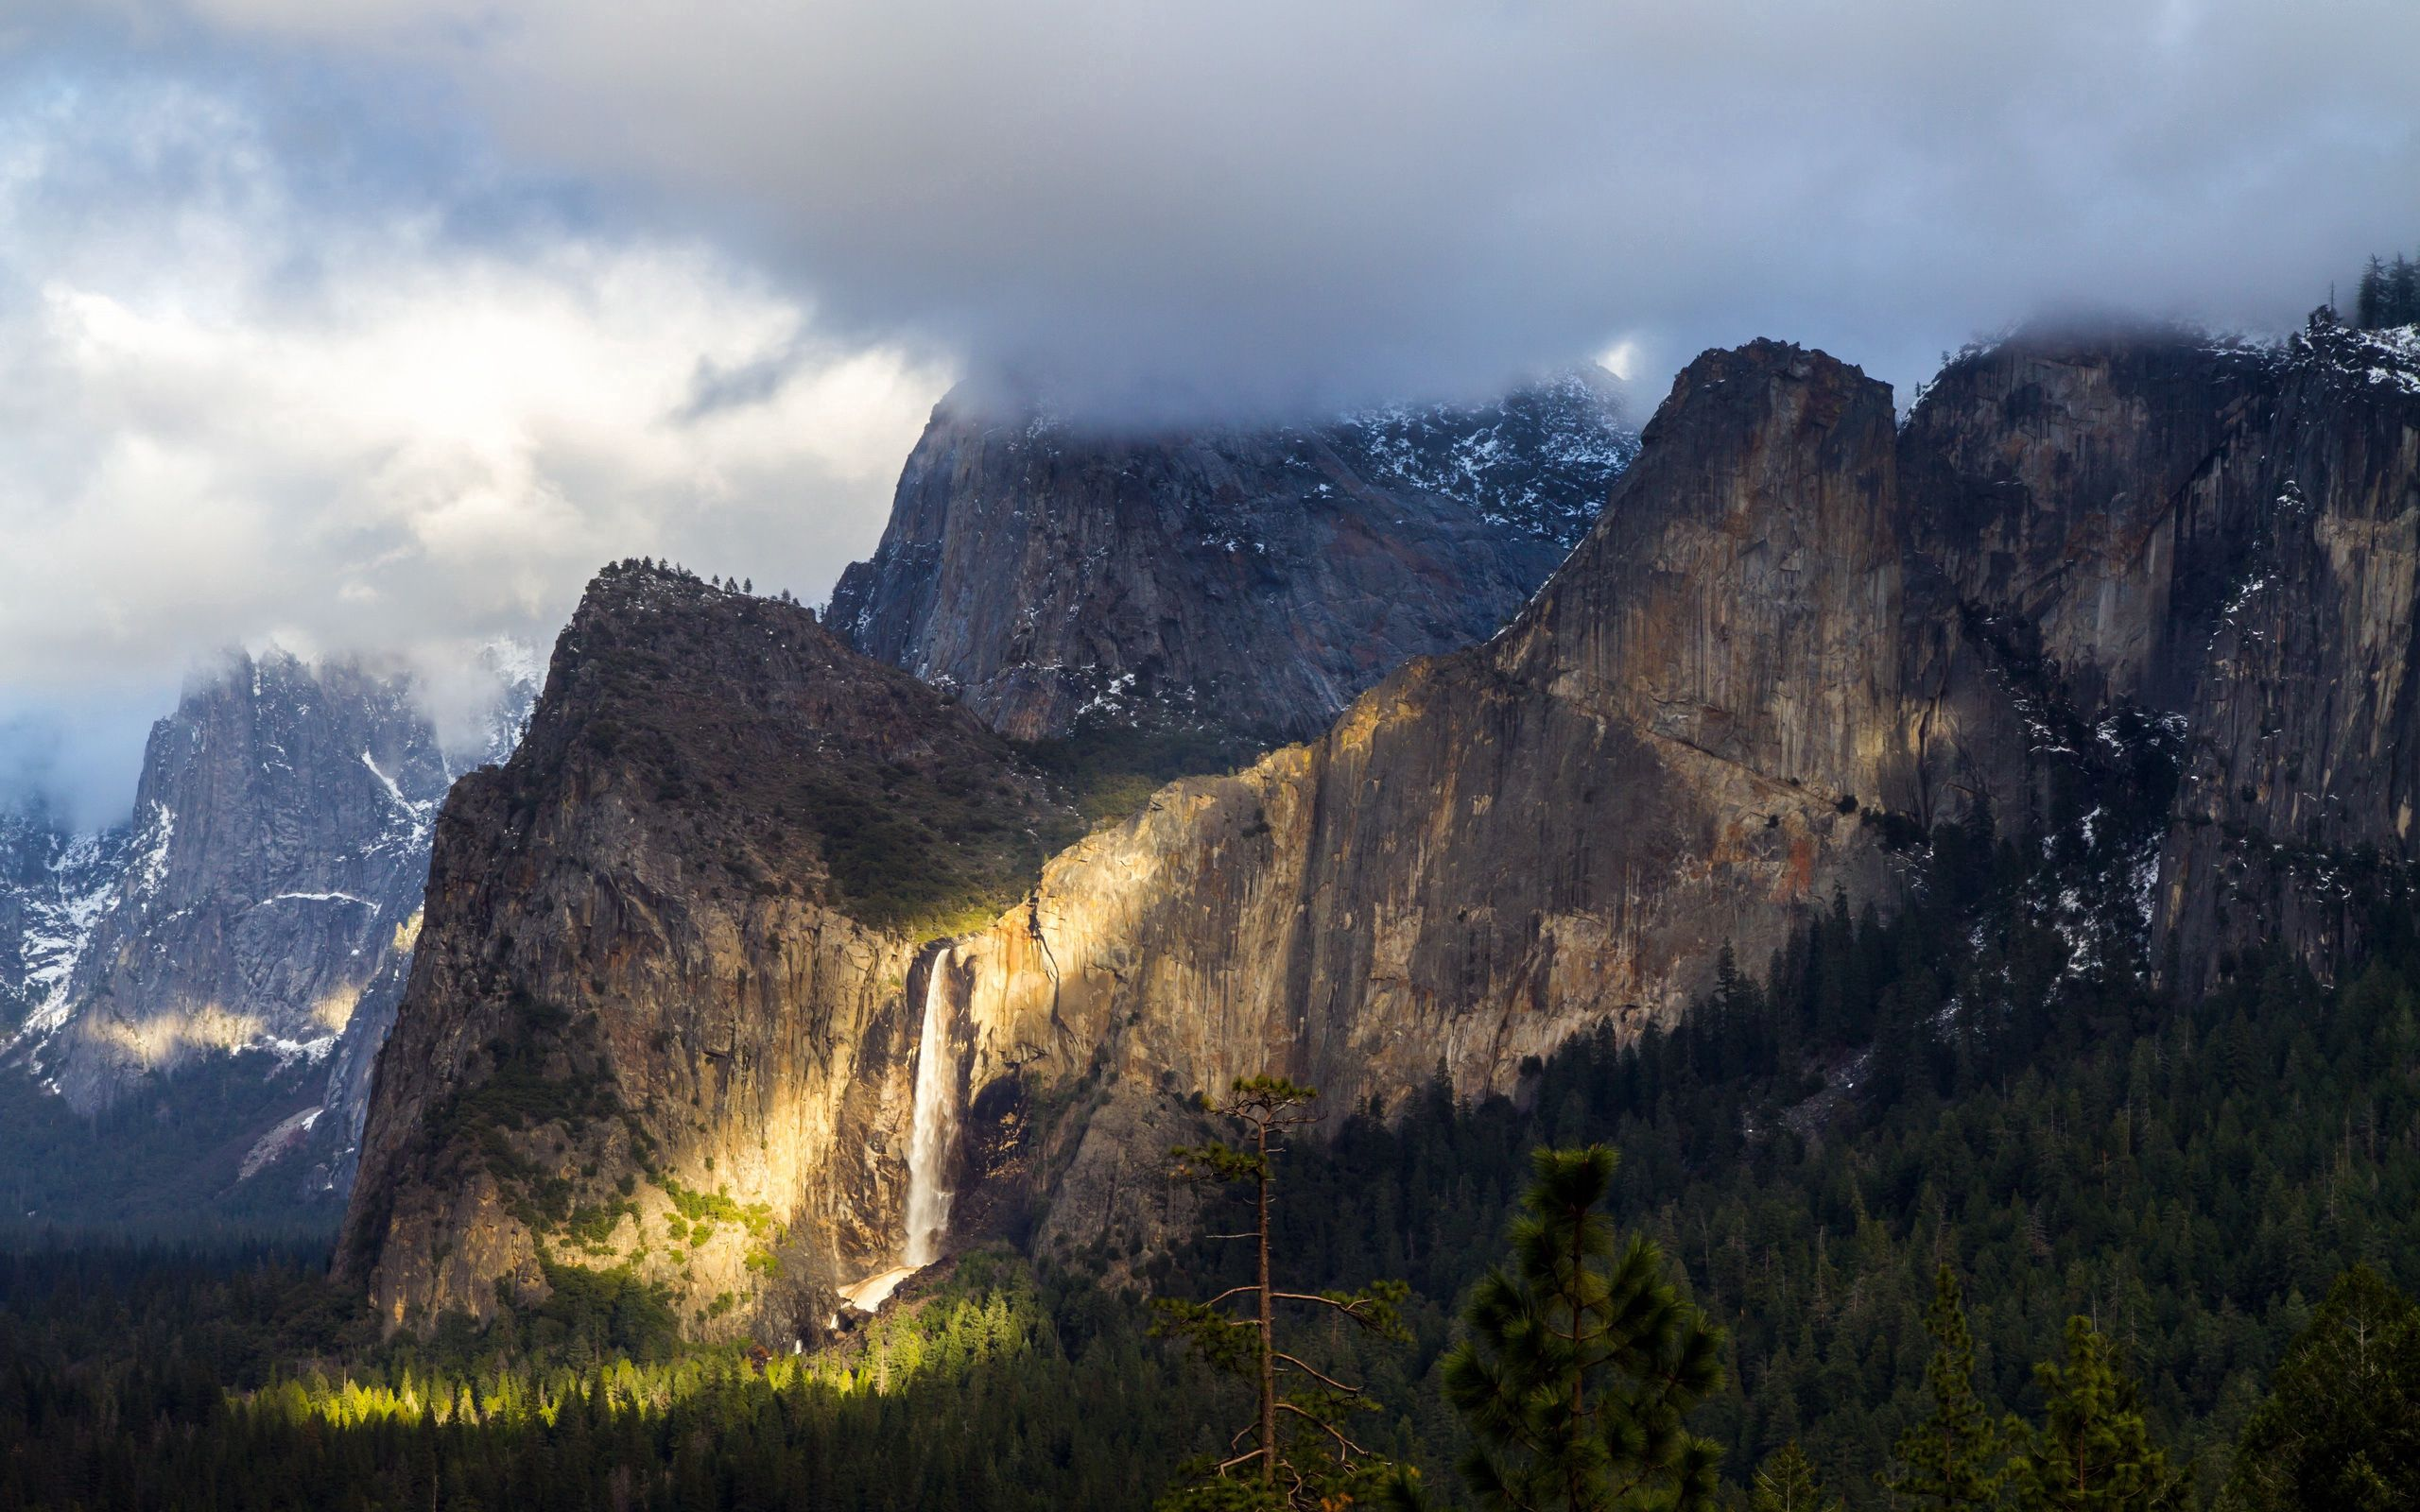 137345 download wallpaper Nature, Yosemite National Park, Yosemite, Fog, Mountains screensavers and pictures for free